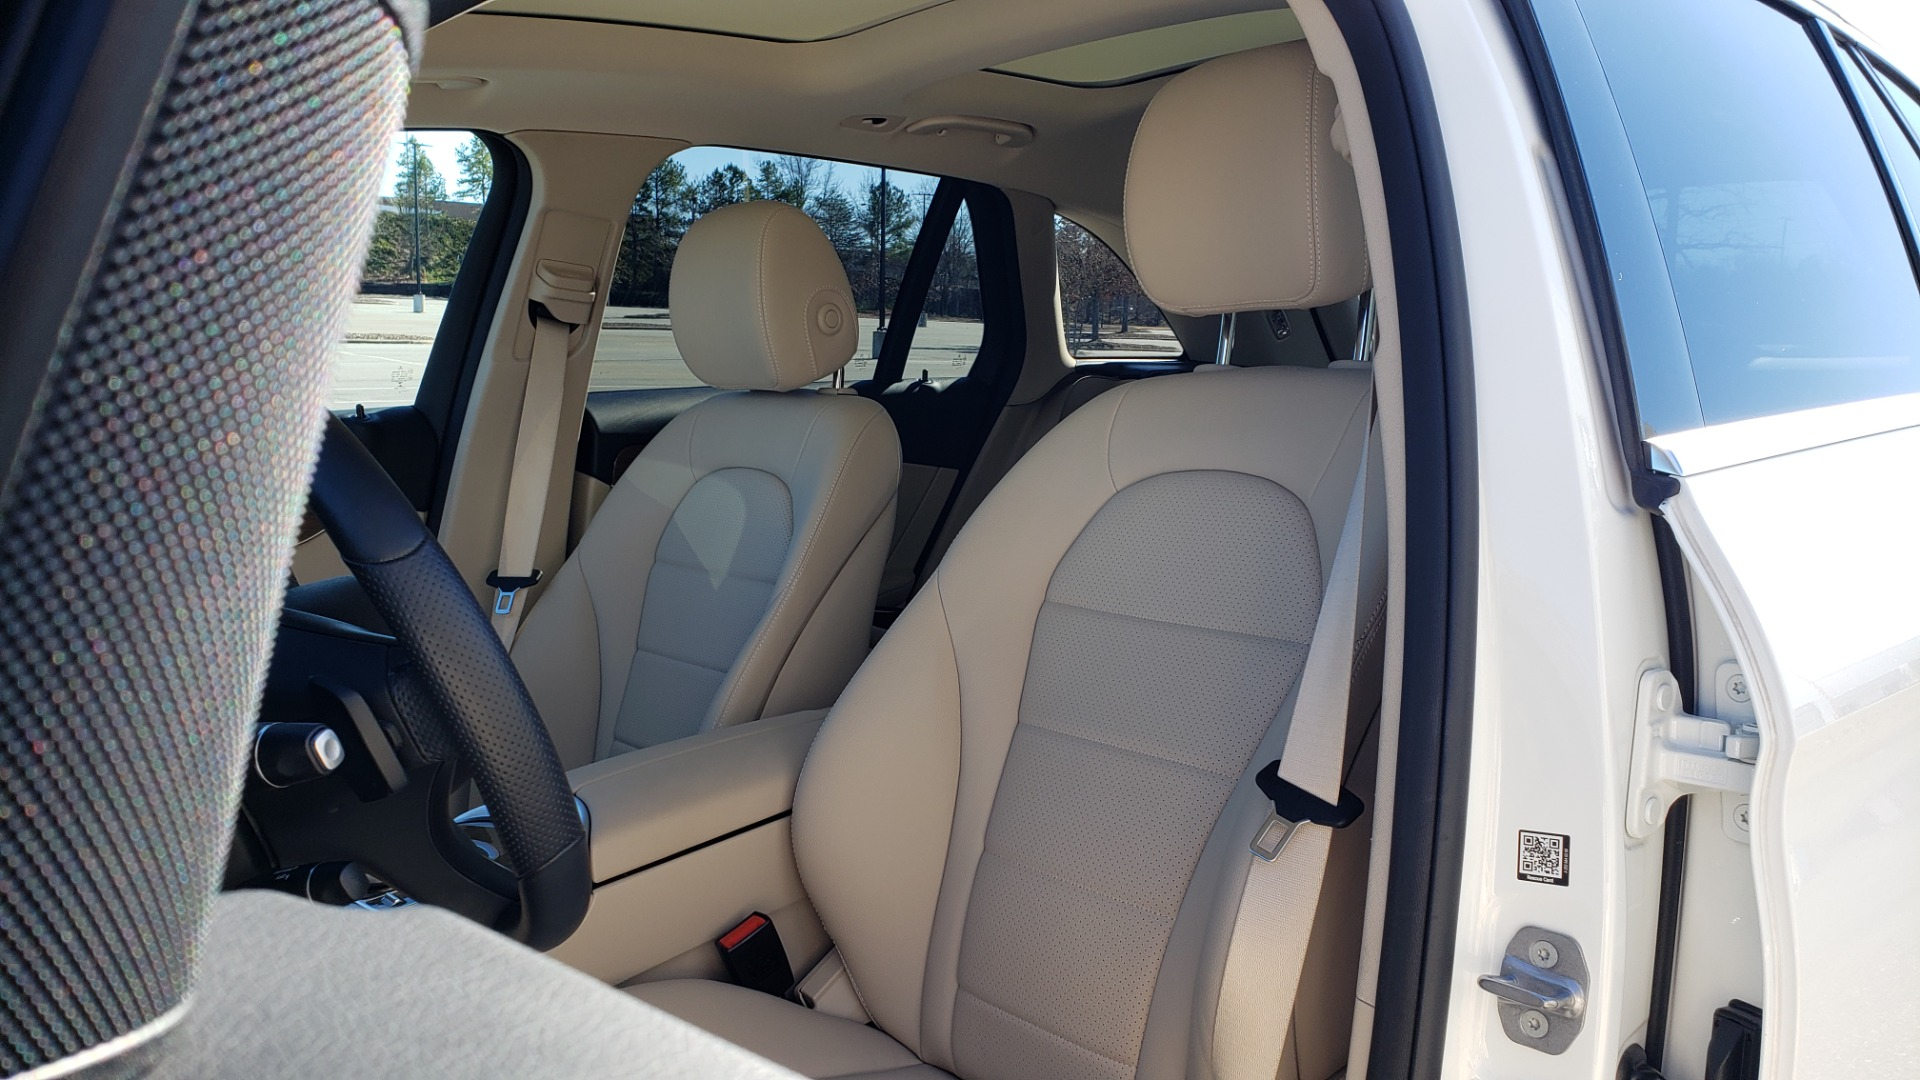 Used 2018 Mercedes-Benz GLC 300 4MATIC / PREM PKG / NAV / SUNROOF / REARVIEW for sale $36,995 at Formula Imports in Charlotte NC 28227 42